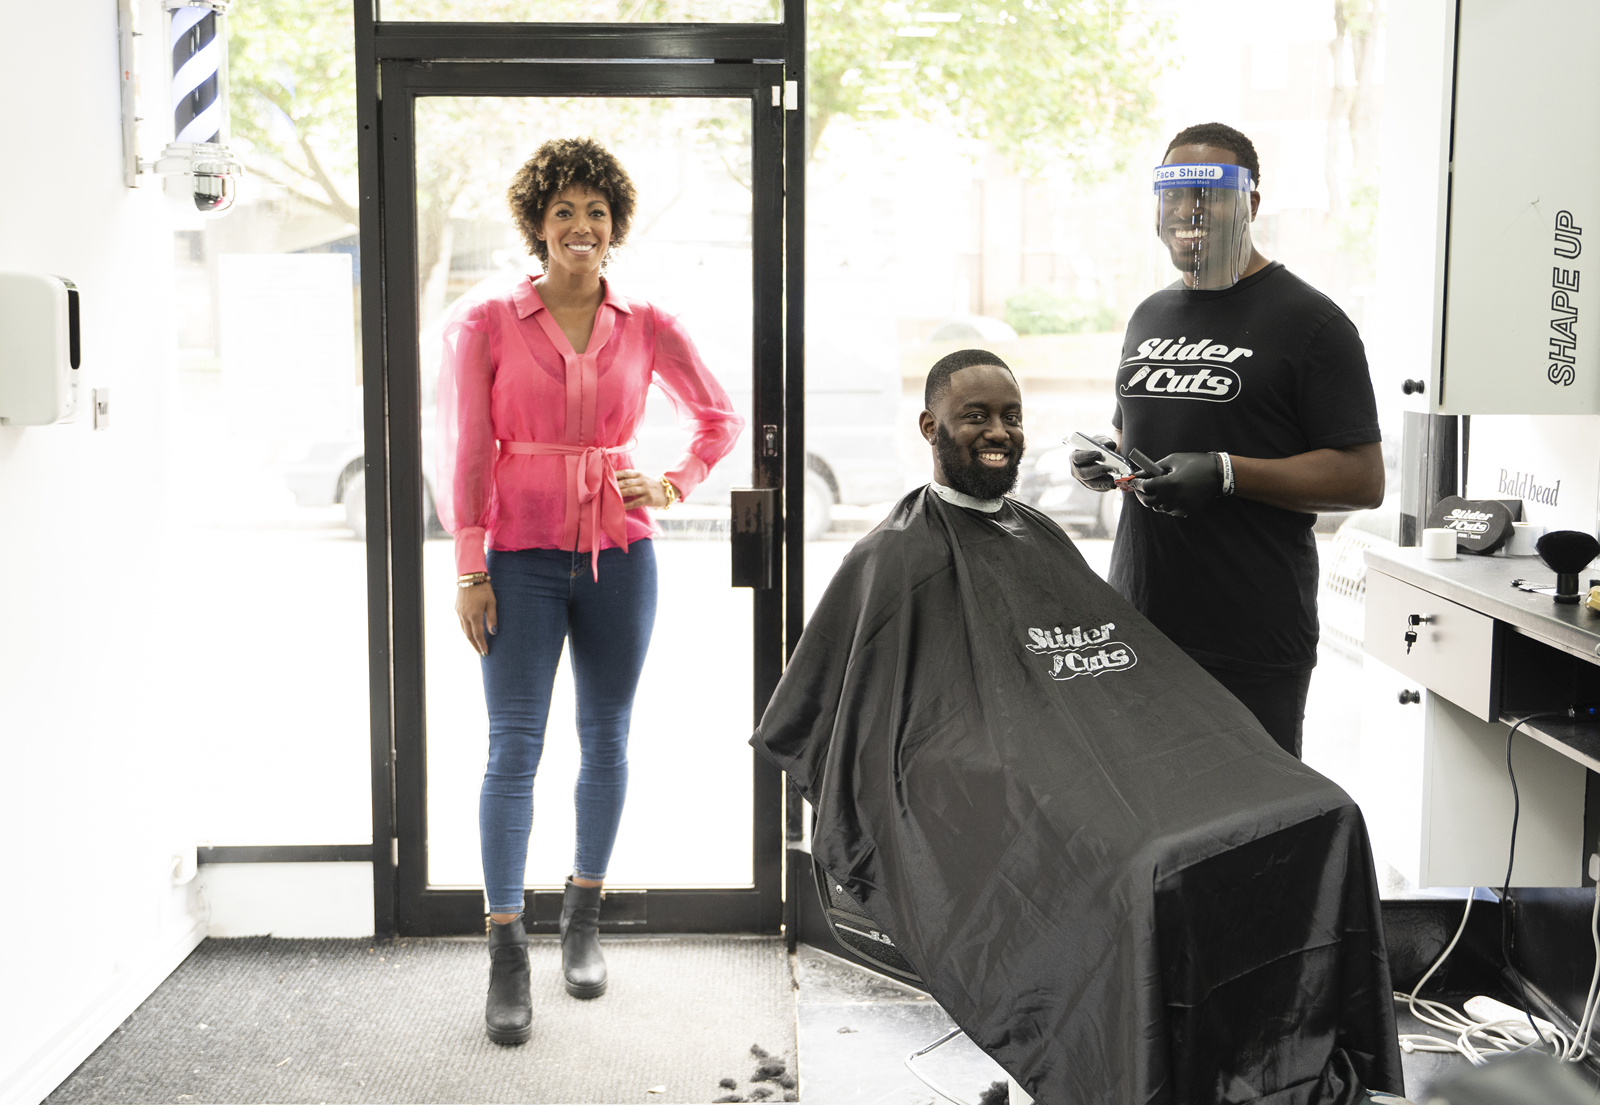 Covid-19 - Staying safe in barbershops and hair salons